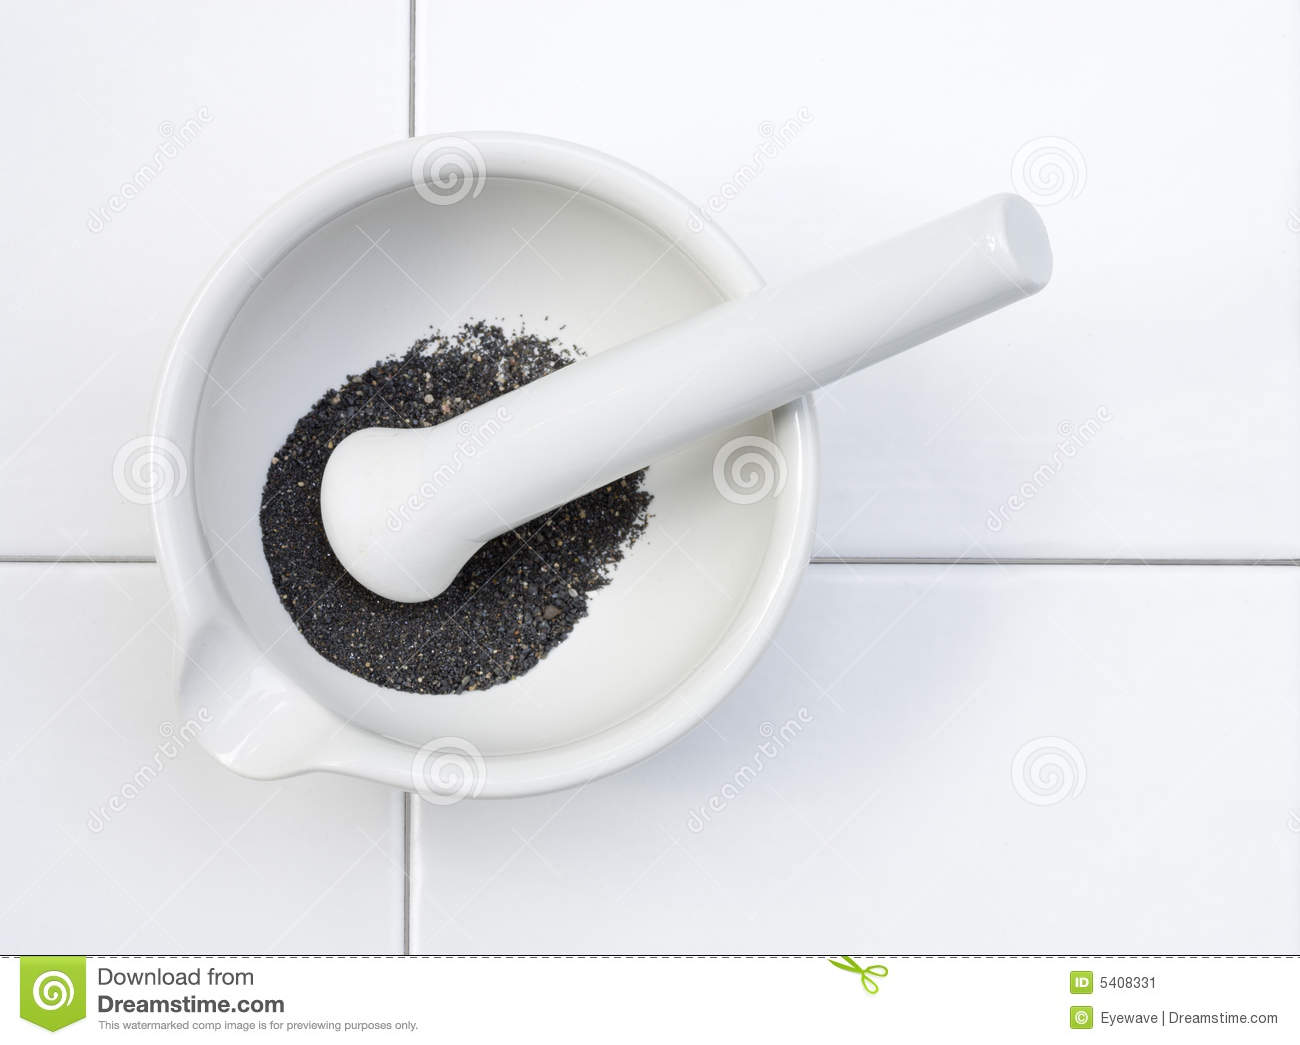 Laboratory Mortar And Pestle Stock Image - Image of white, grain ... for Laboratory Mortar And Pestle  75sfw